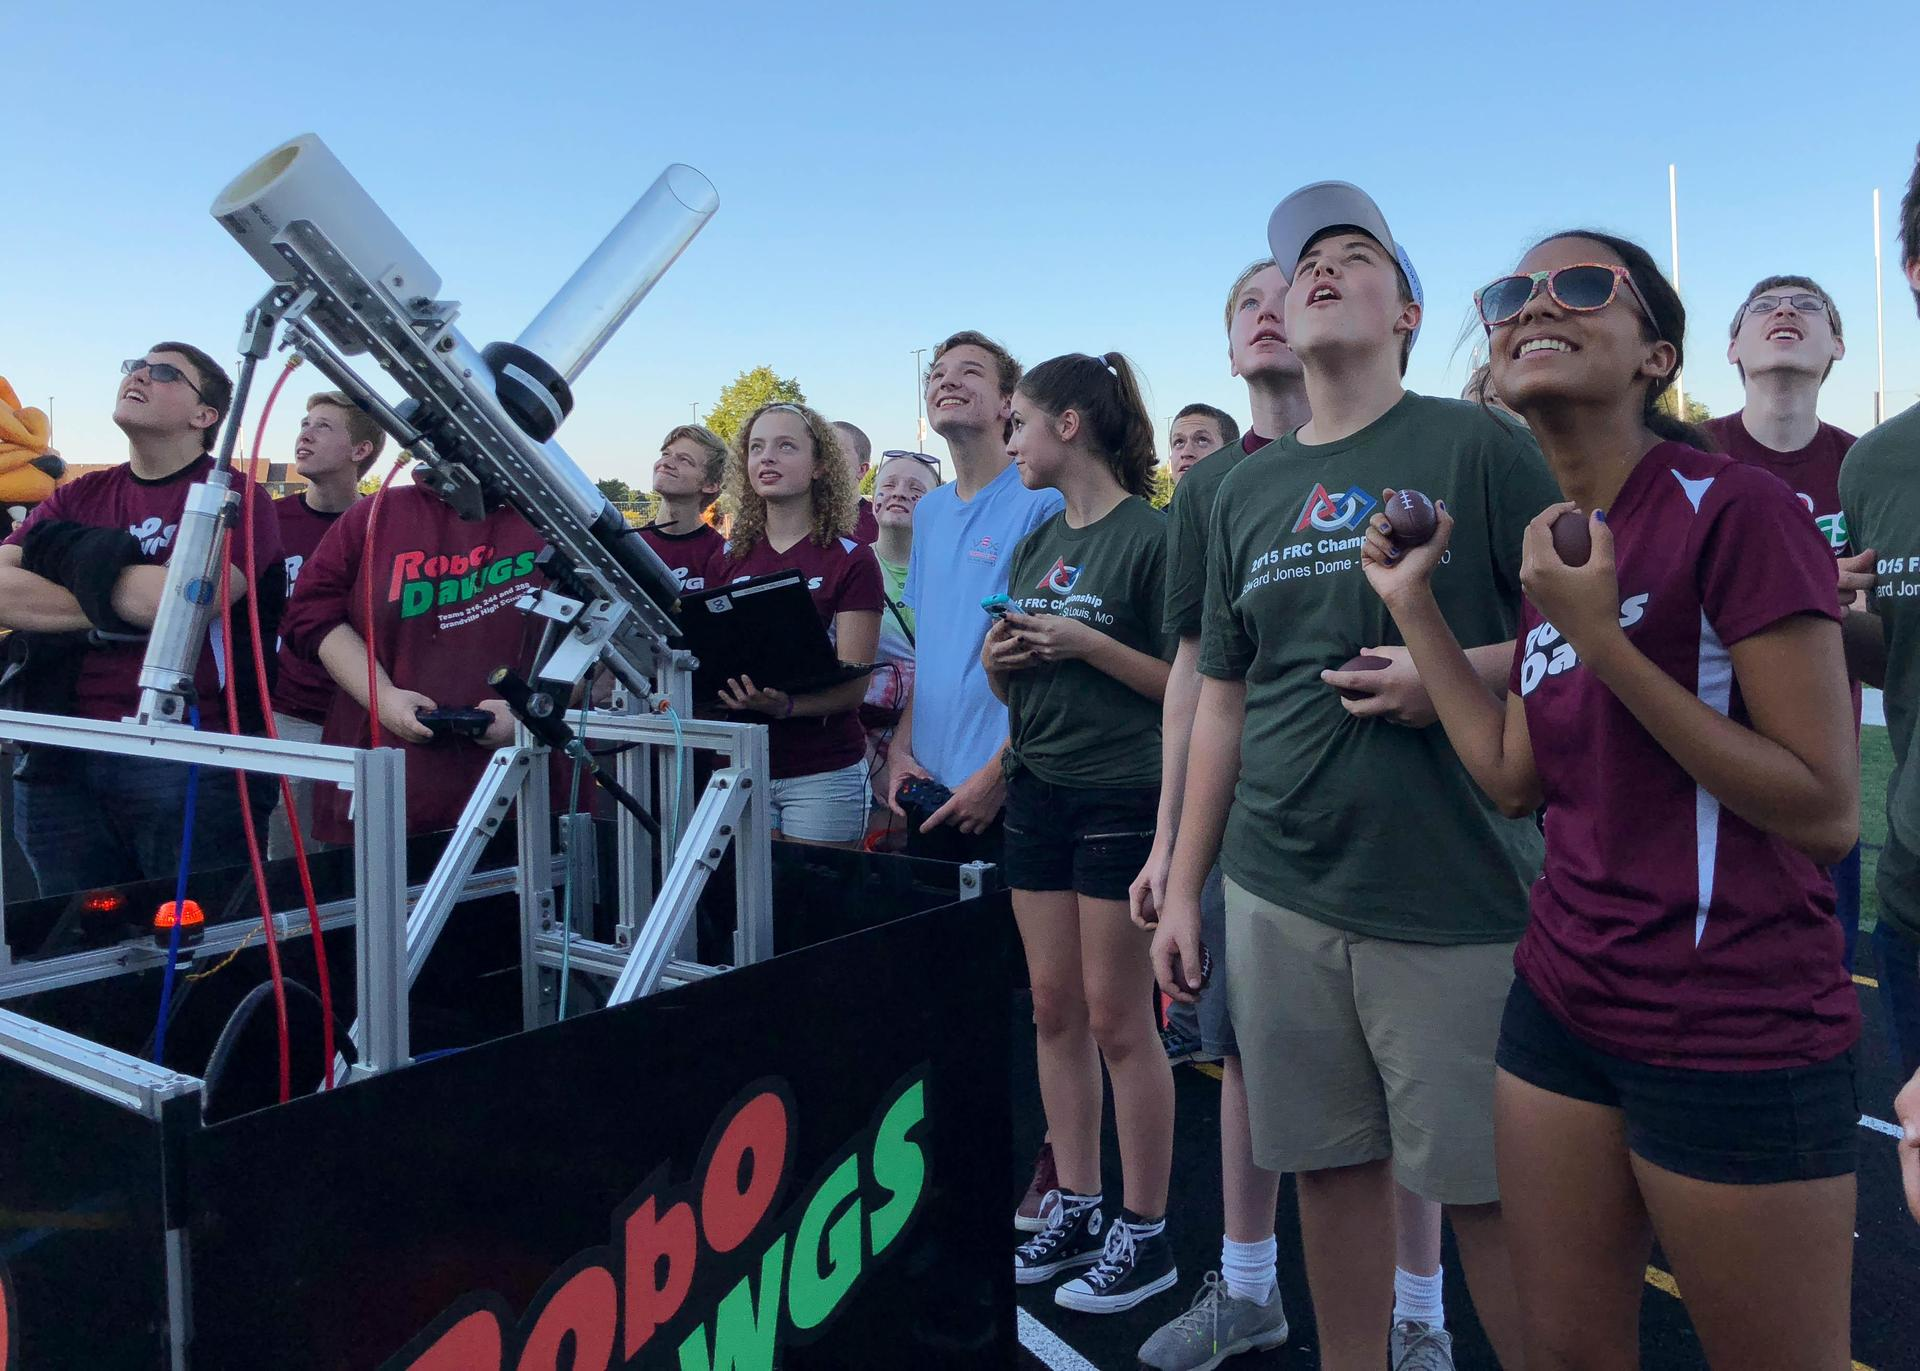 high school robotics students launch t-shirt into stands